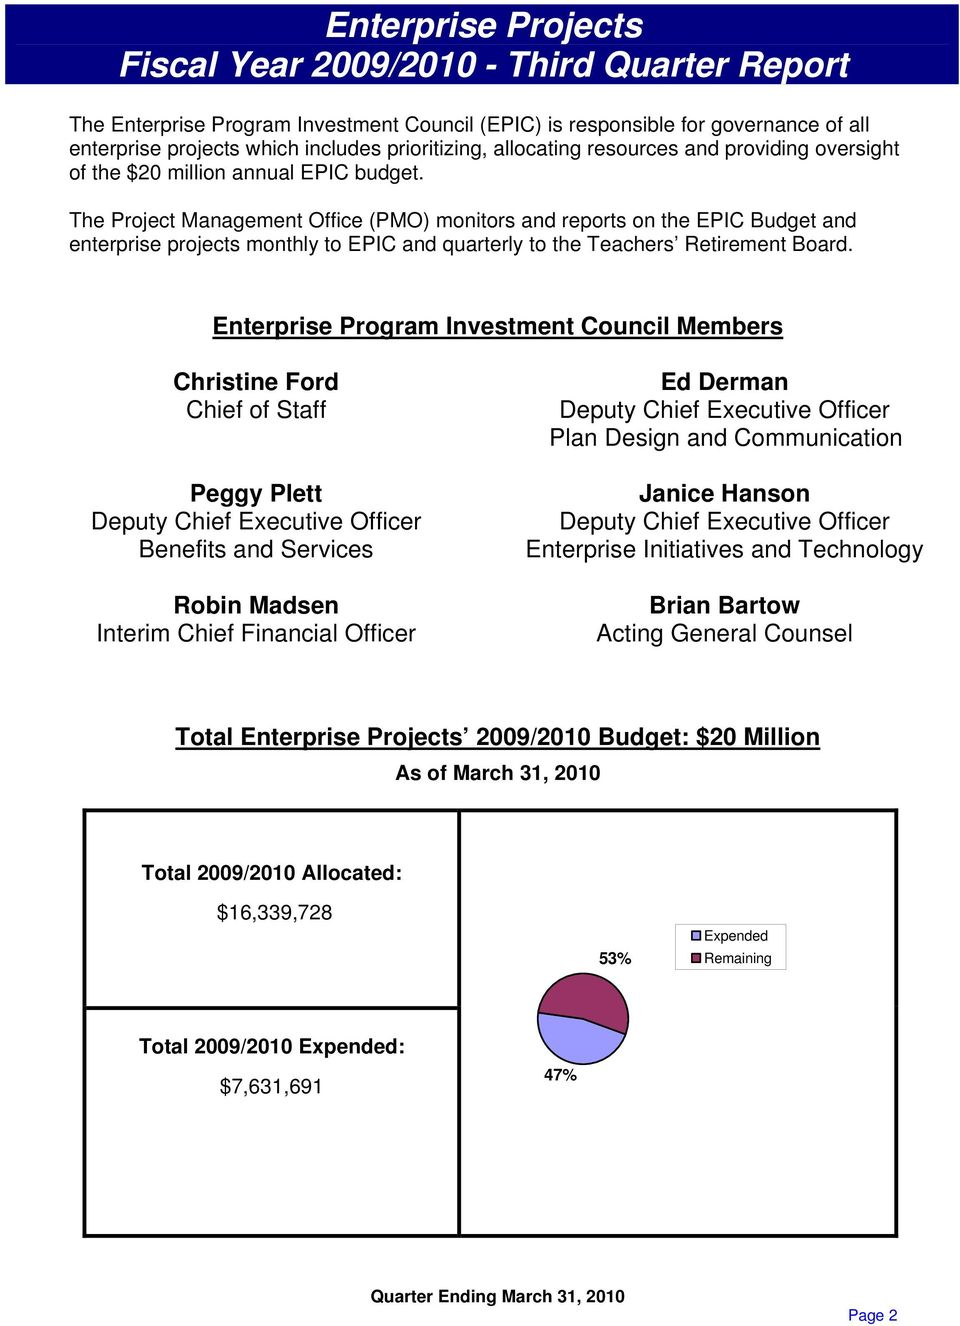 The Project Management Office (PMO) monitors and reports on the EPIC Budget and enterprise projects monthly to EPIC and quarterly to the Teachers Retirement Board.